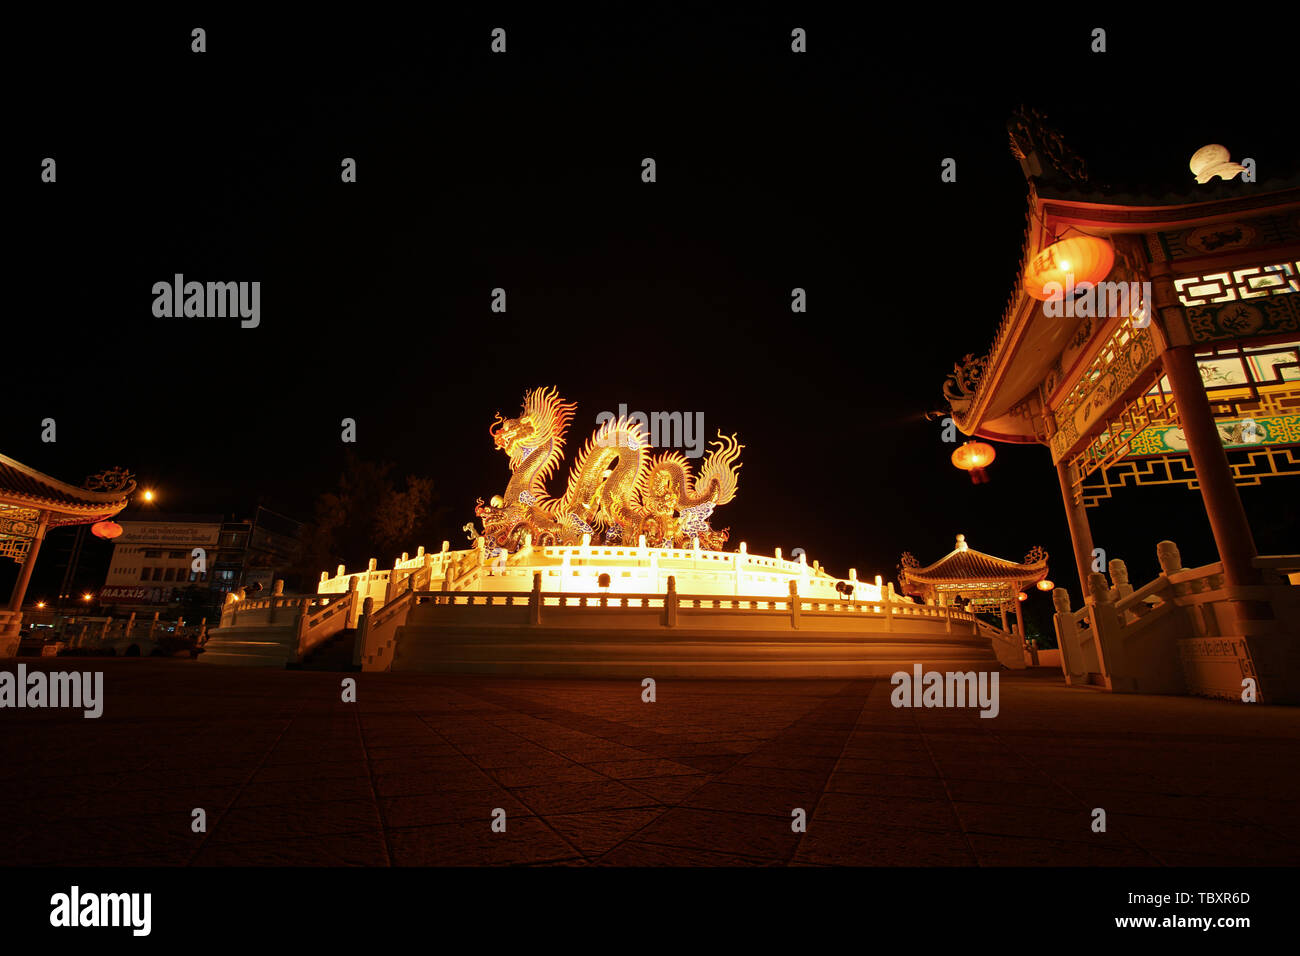 Nakhon Sawan, Thailand - May 10, 2019: Gorgeous dragon statue in Sawan Park, Nakhon Sawan privince, Thailand. Stock Photo